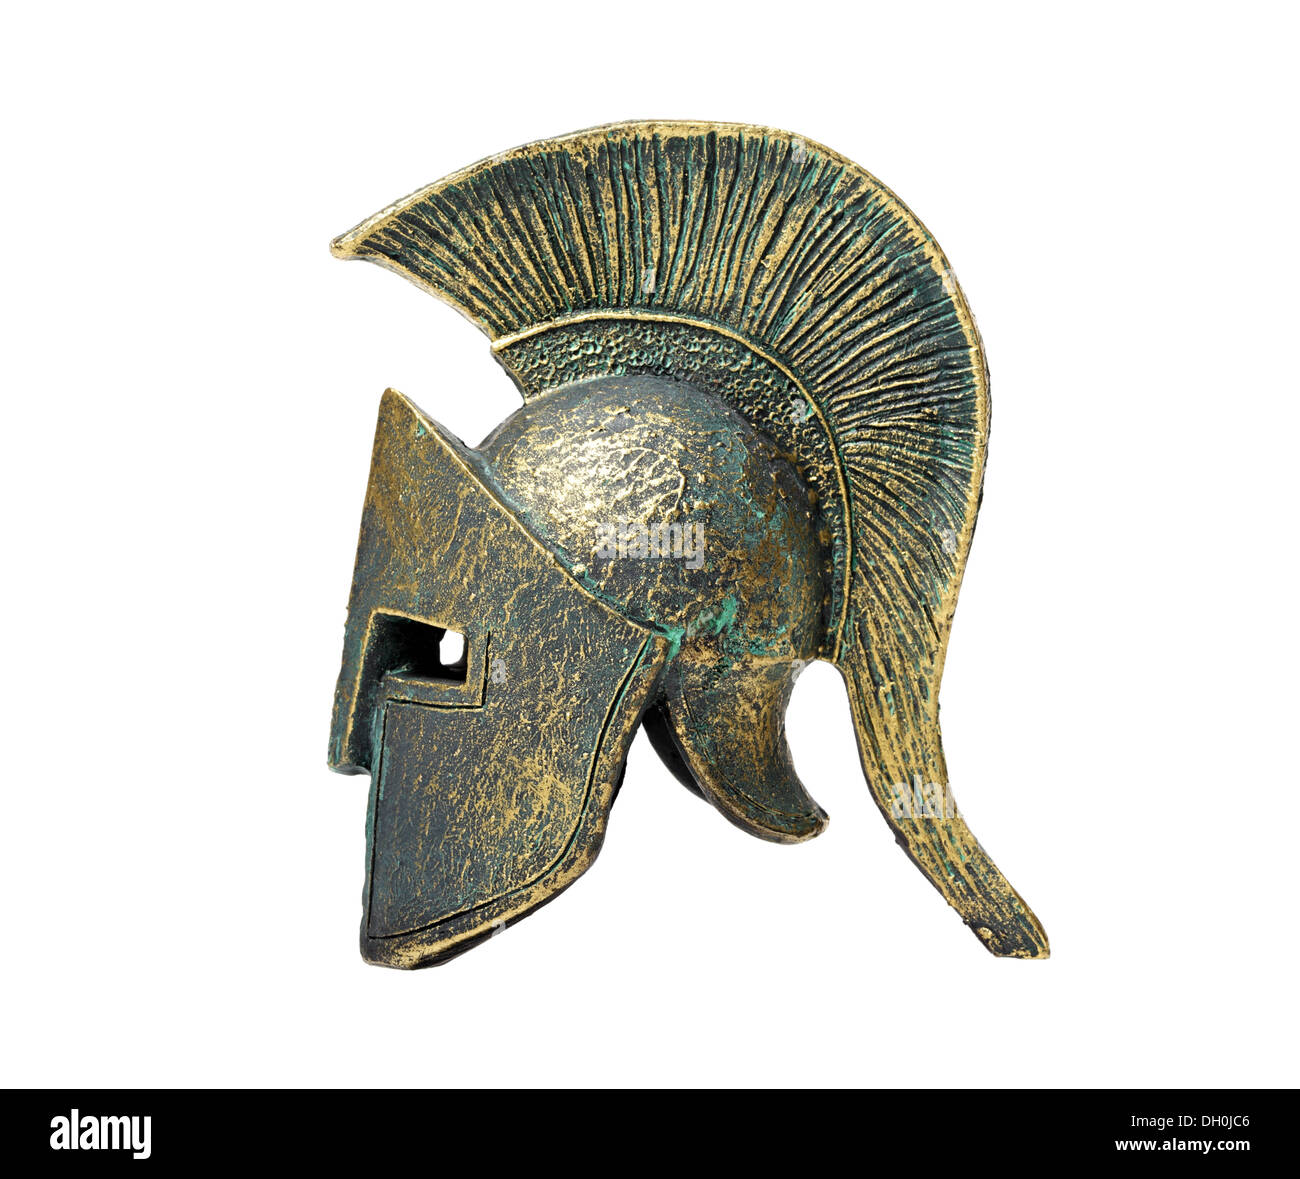 Ancient Greek Helmet Spartan Style Isolated on White - Stock Image